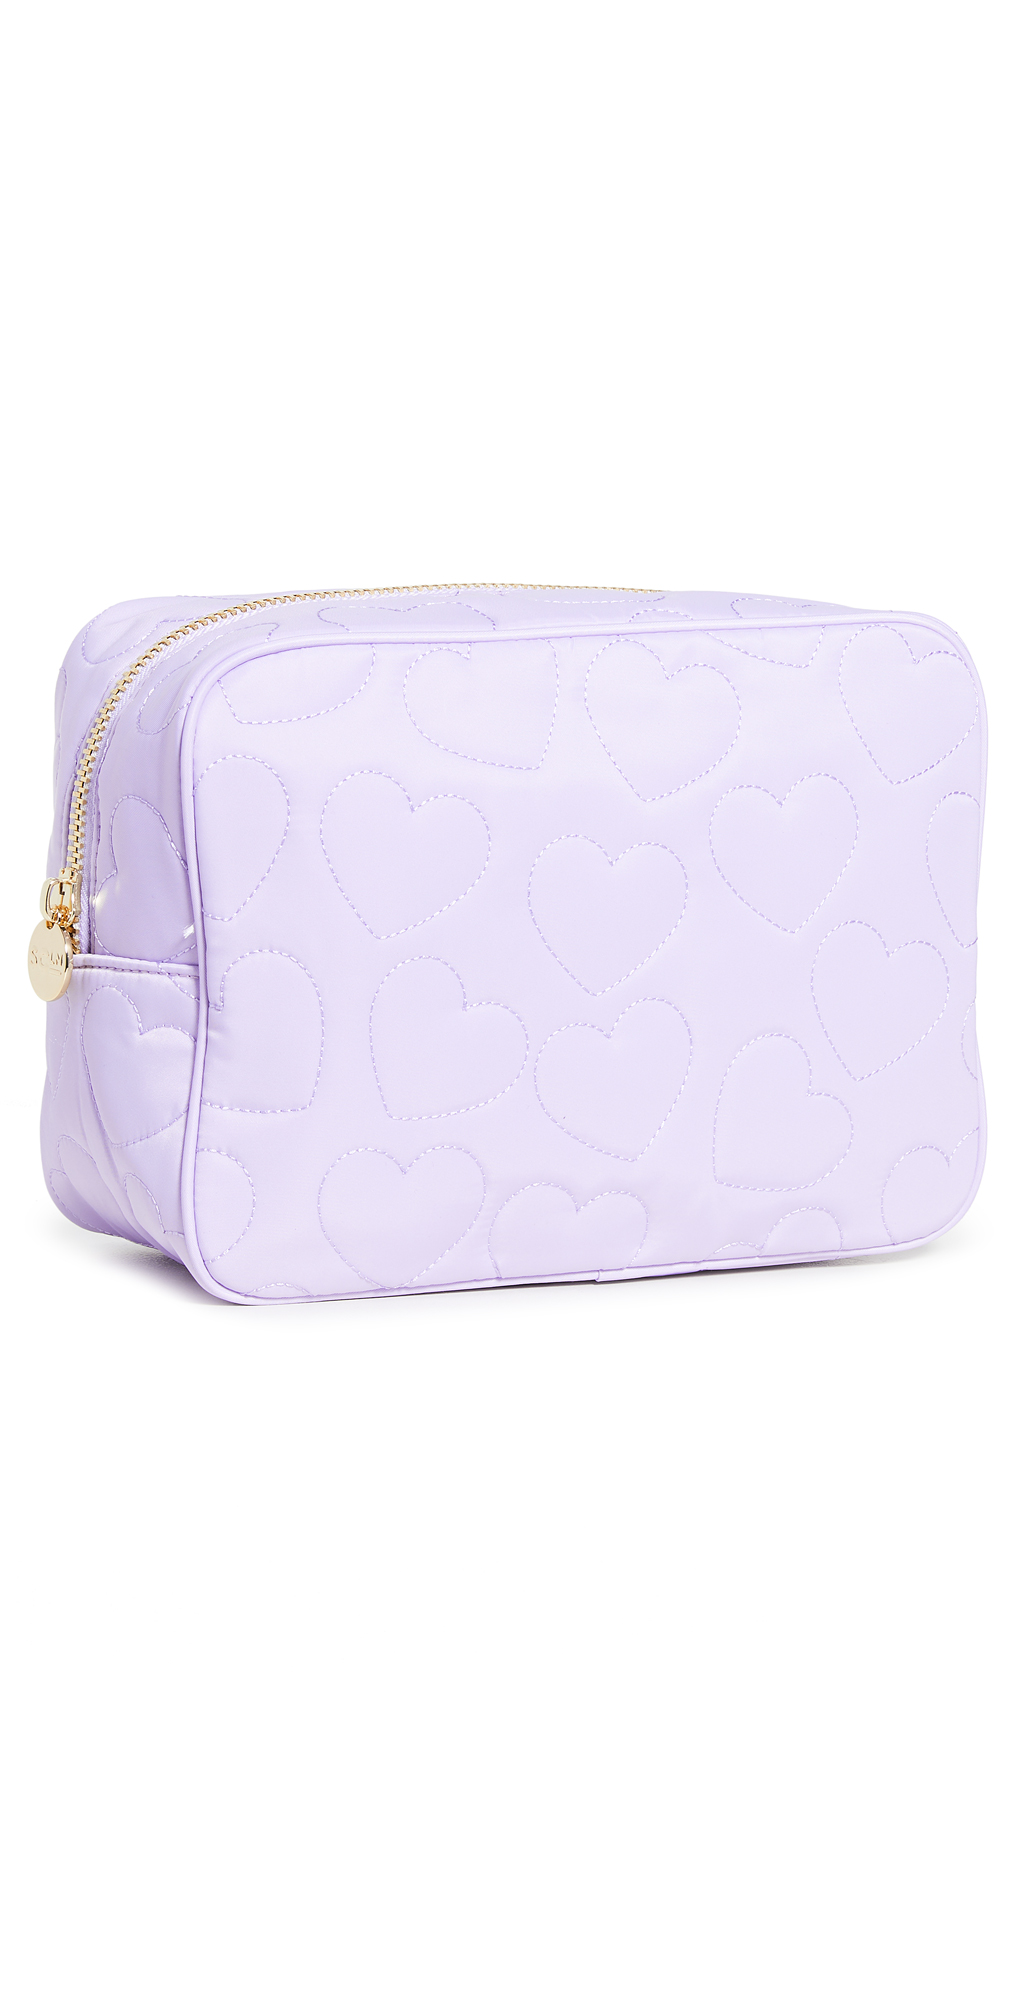 Stoney Clover Lane Puffy Large Pouch